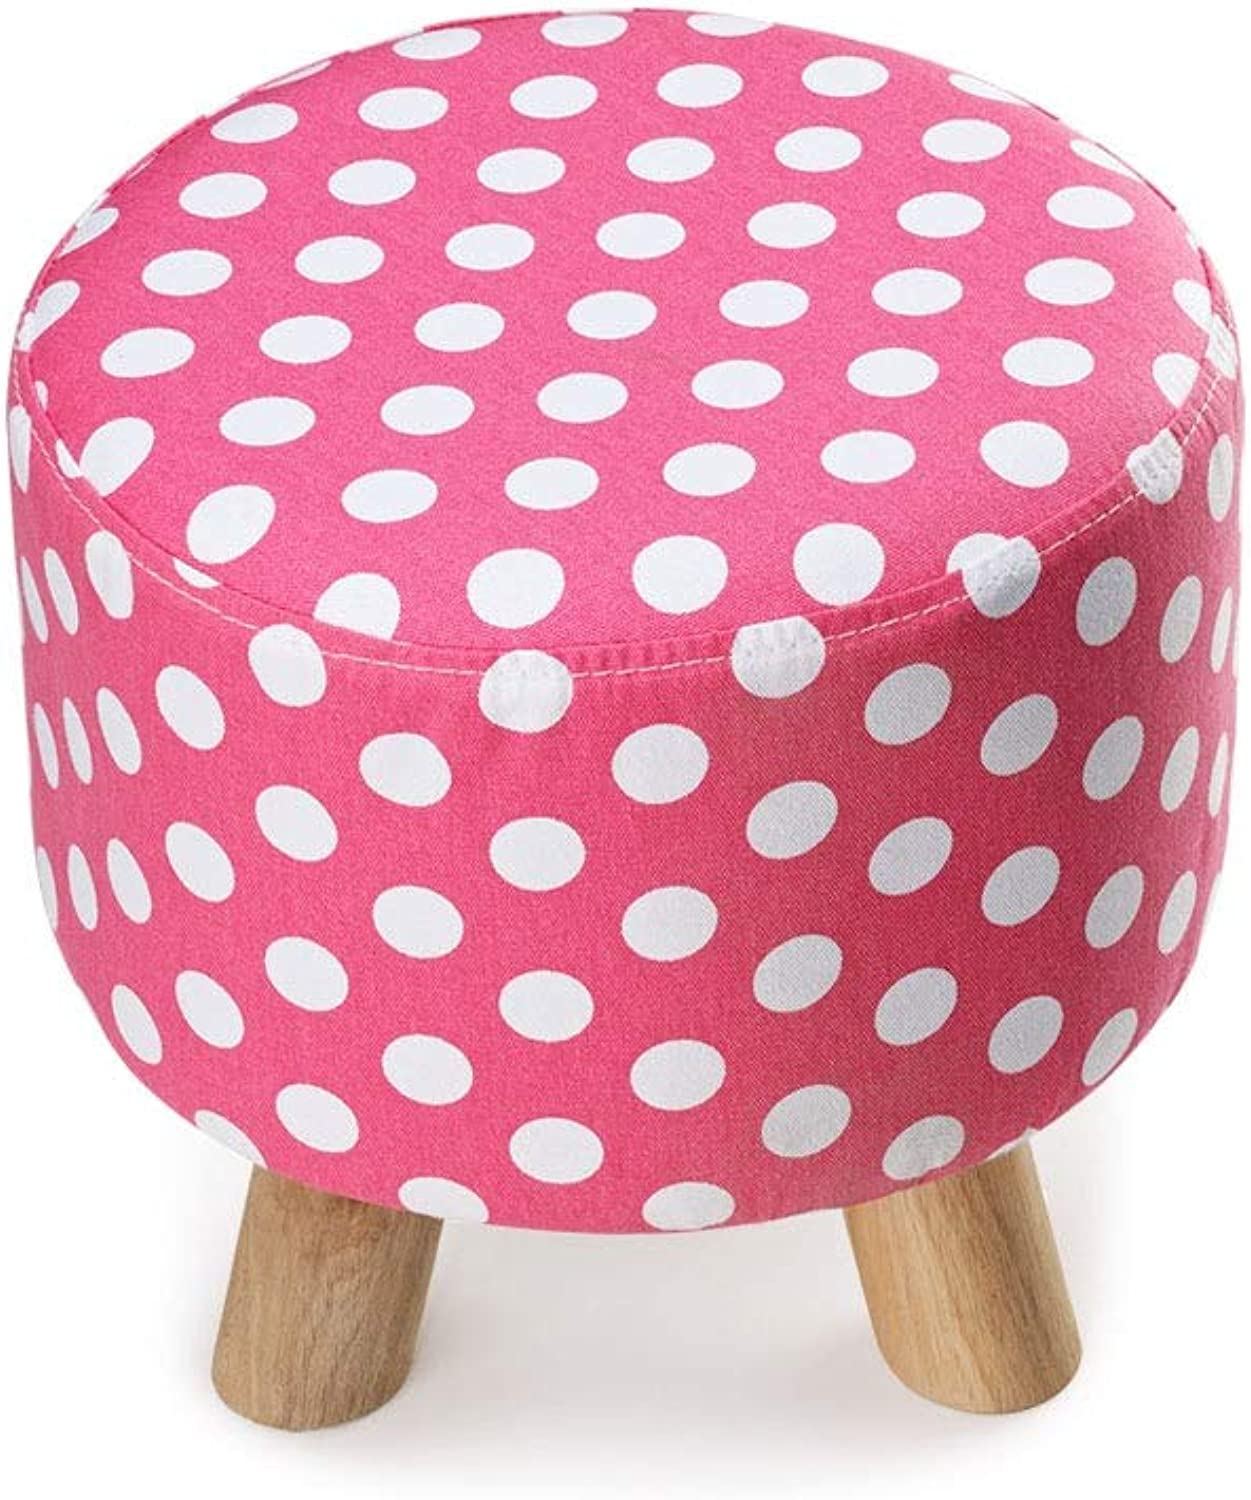 Footstool Three-Legged Small Round Stool Dot Fabric Sofa Bench Wear shoes Low Stool Solid Wood Pier (color   Pink)